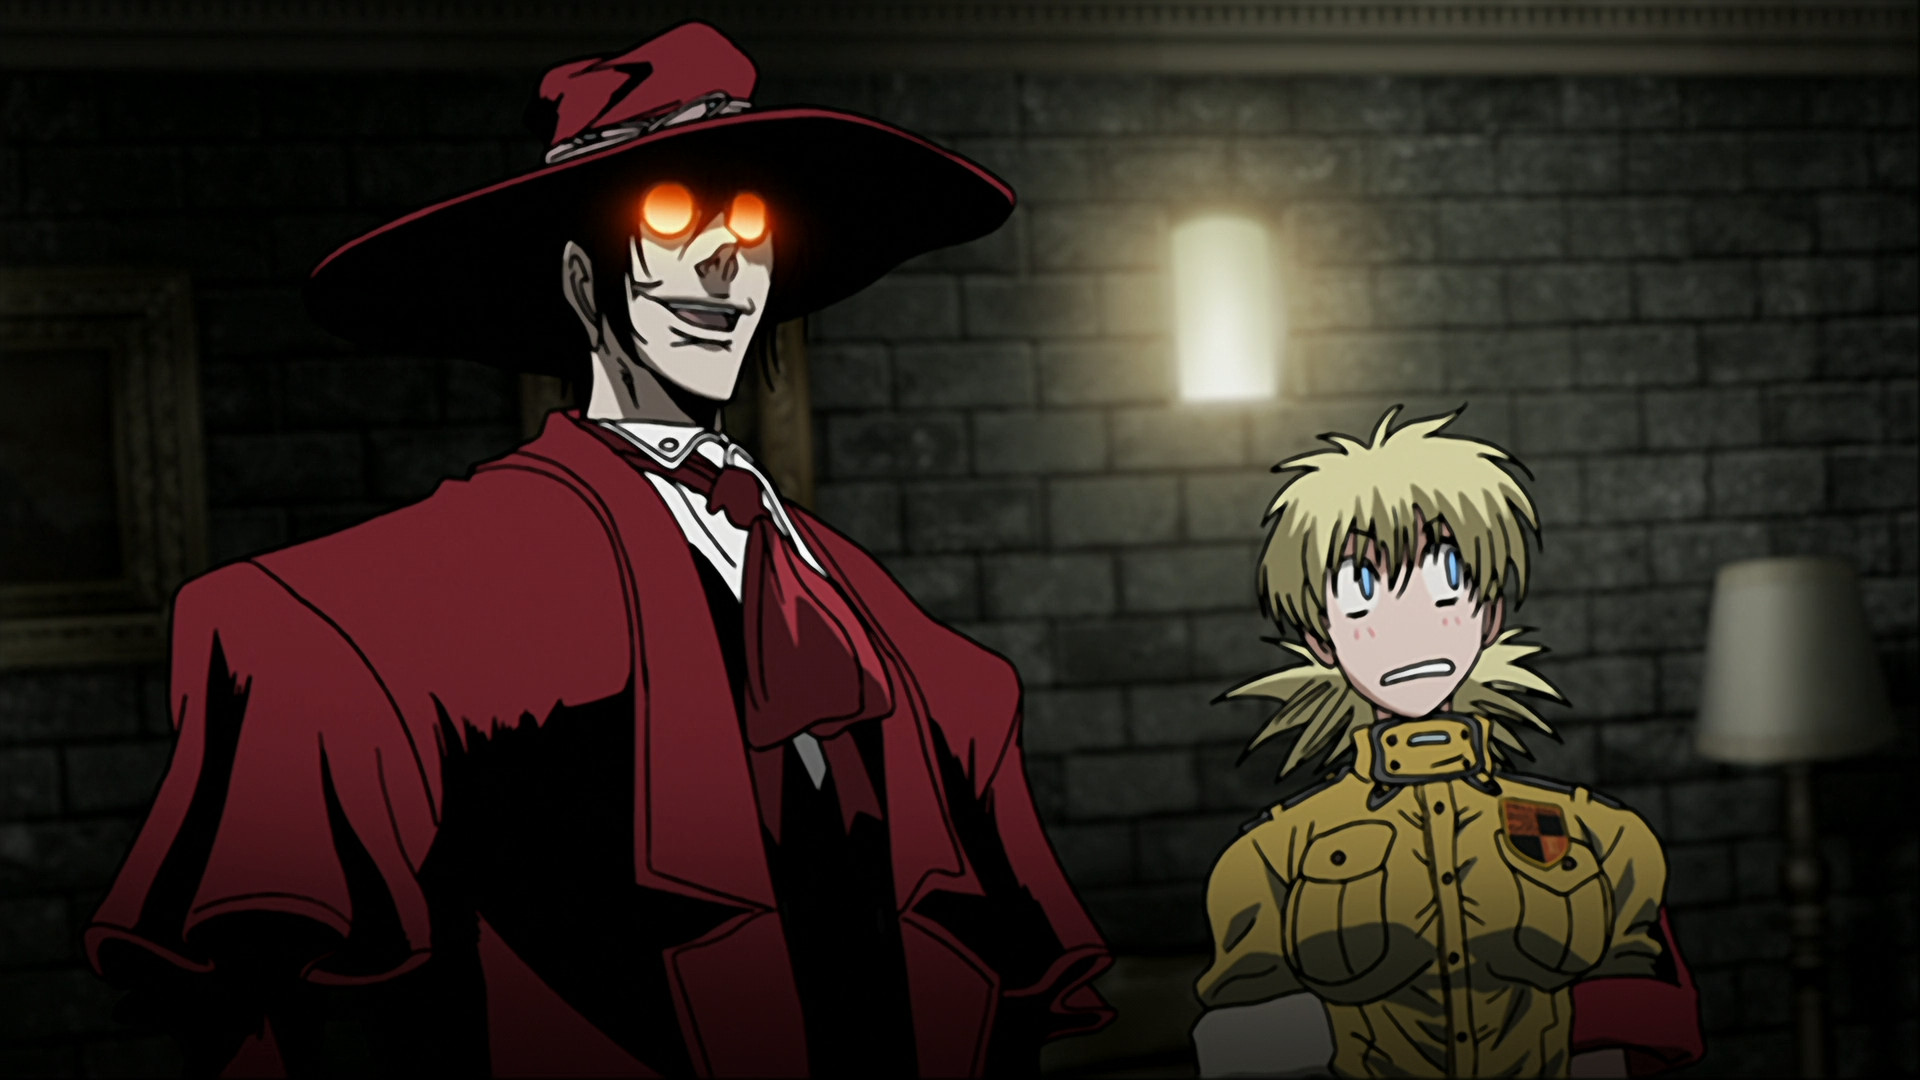 1920x1080 In flashback, Integra is seen assuming leadership of the Hellsing  organization as she resolves a conflict with her uncle with the help of the  vampire ...